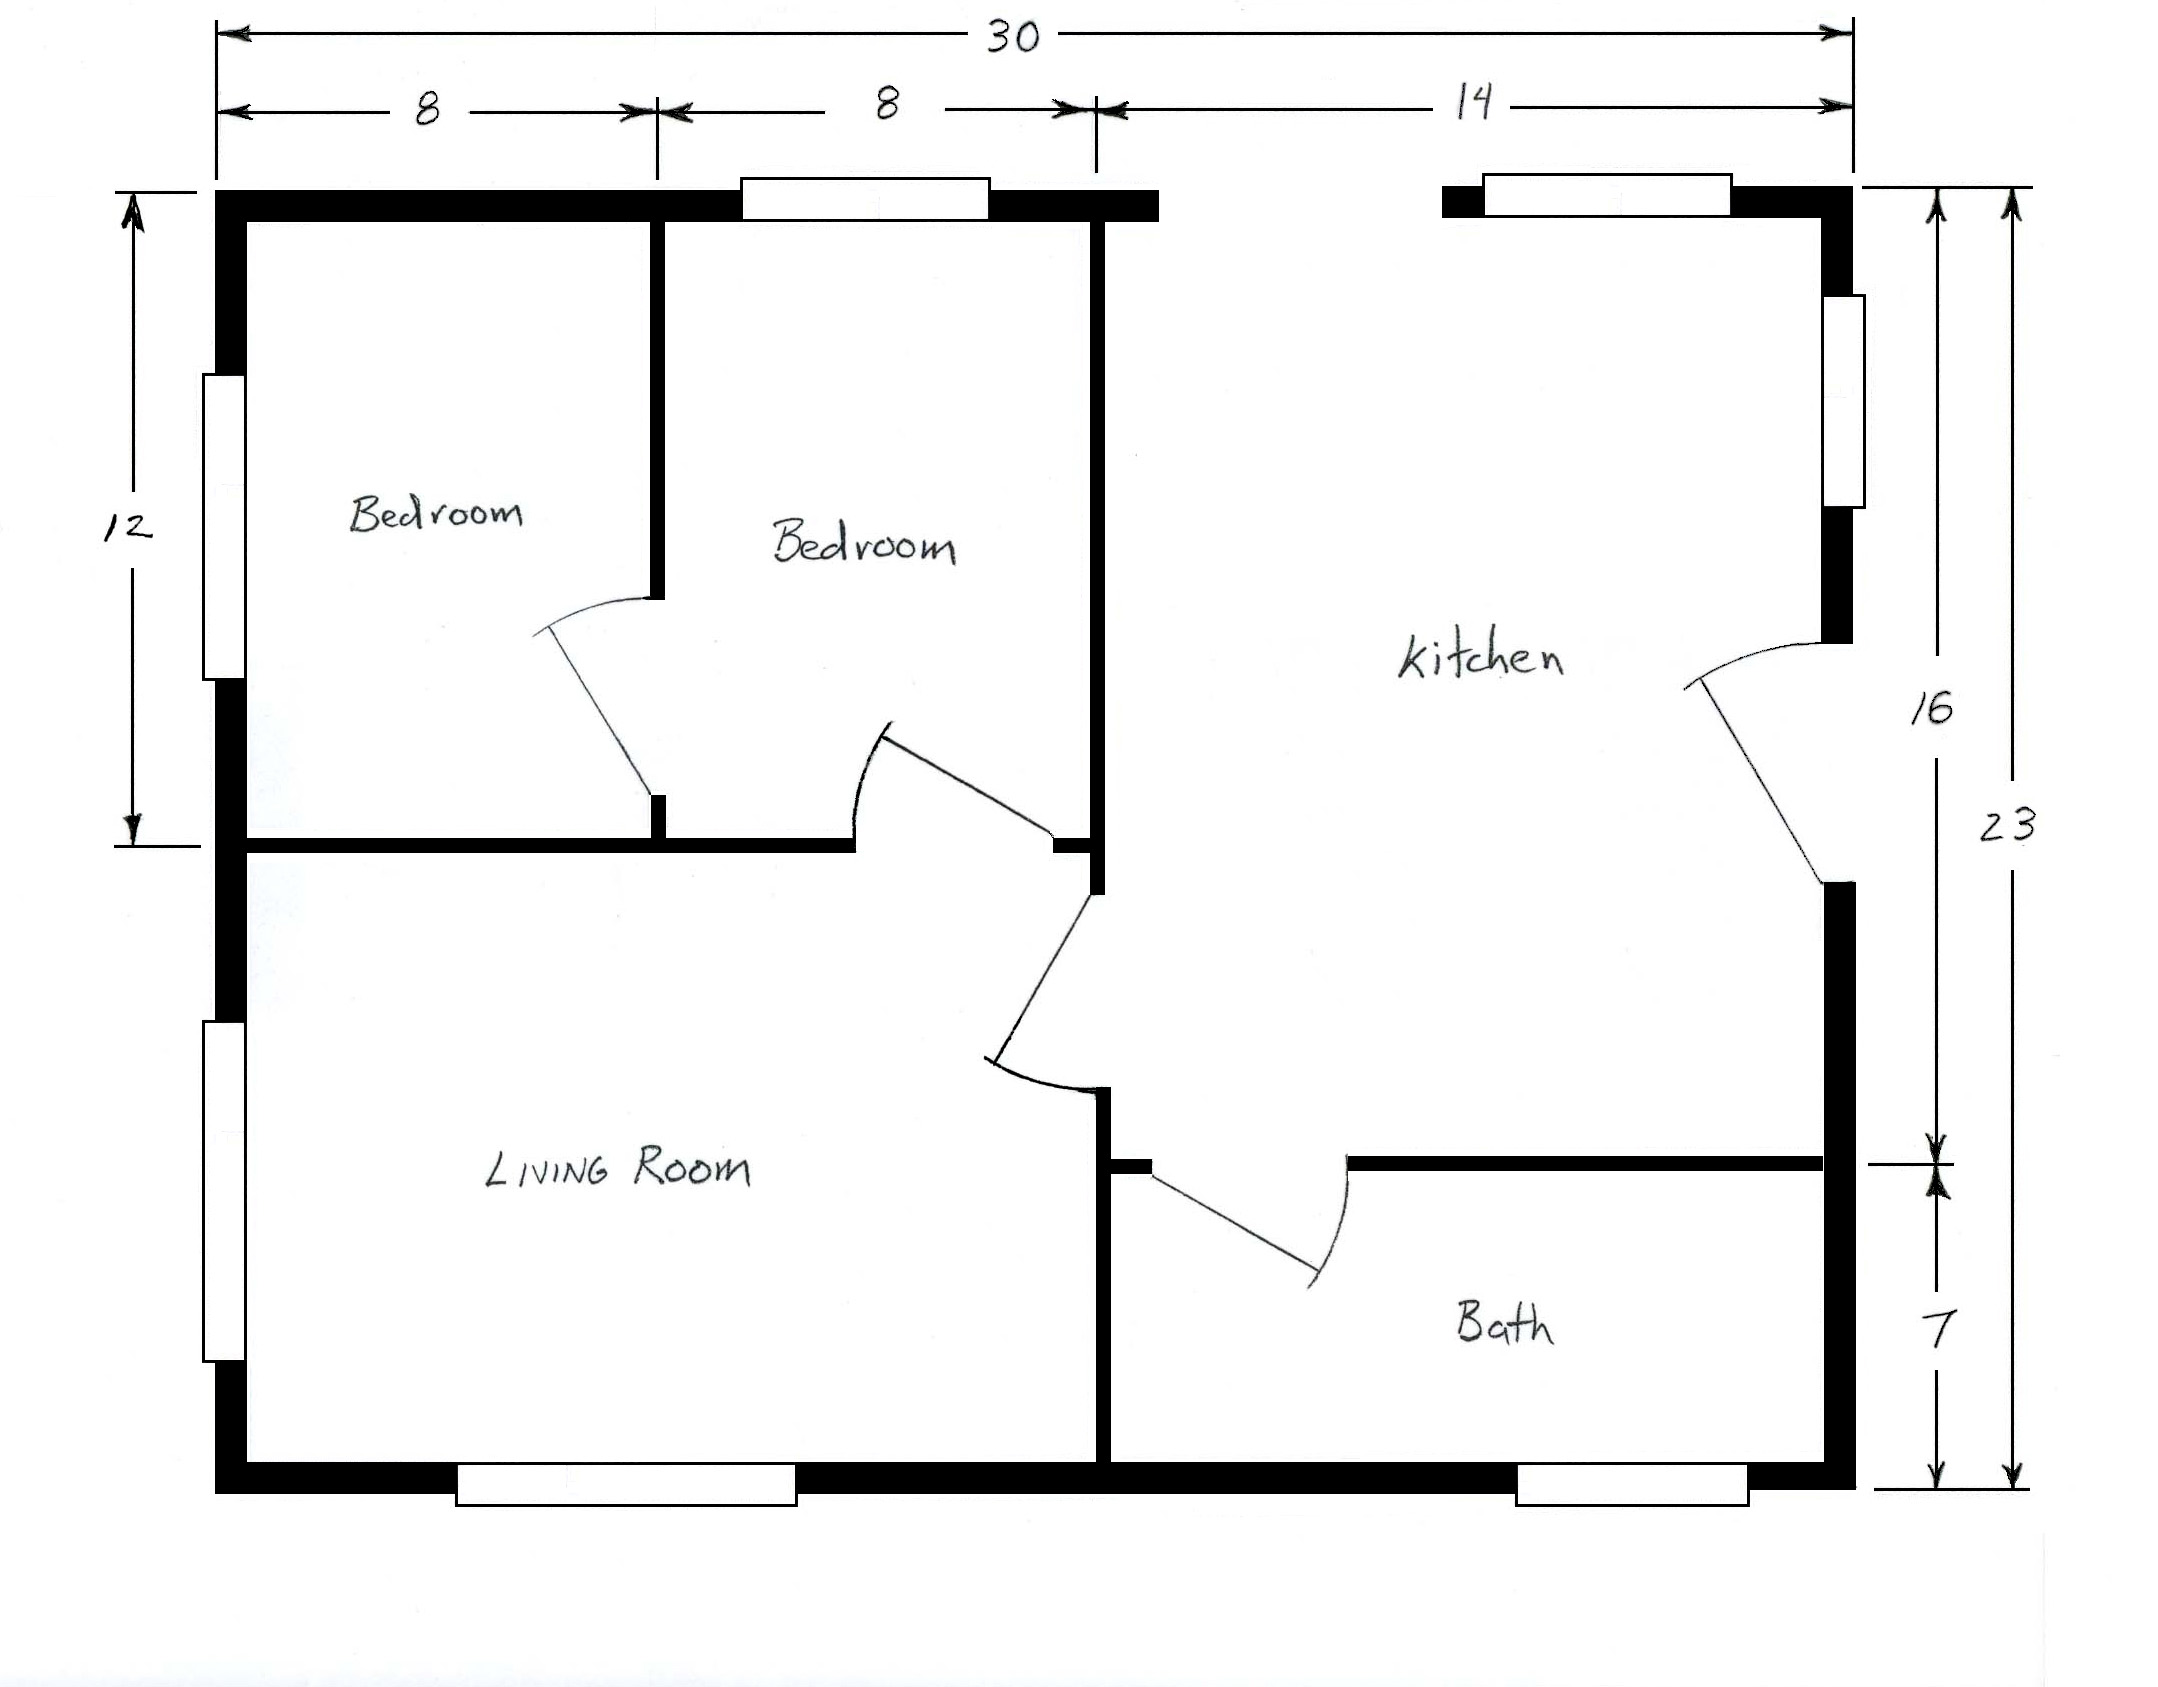 Free home plans sample house floor plans House design templates